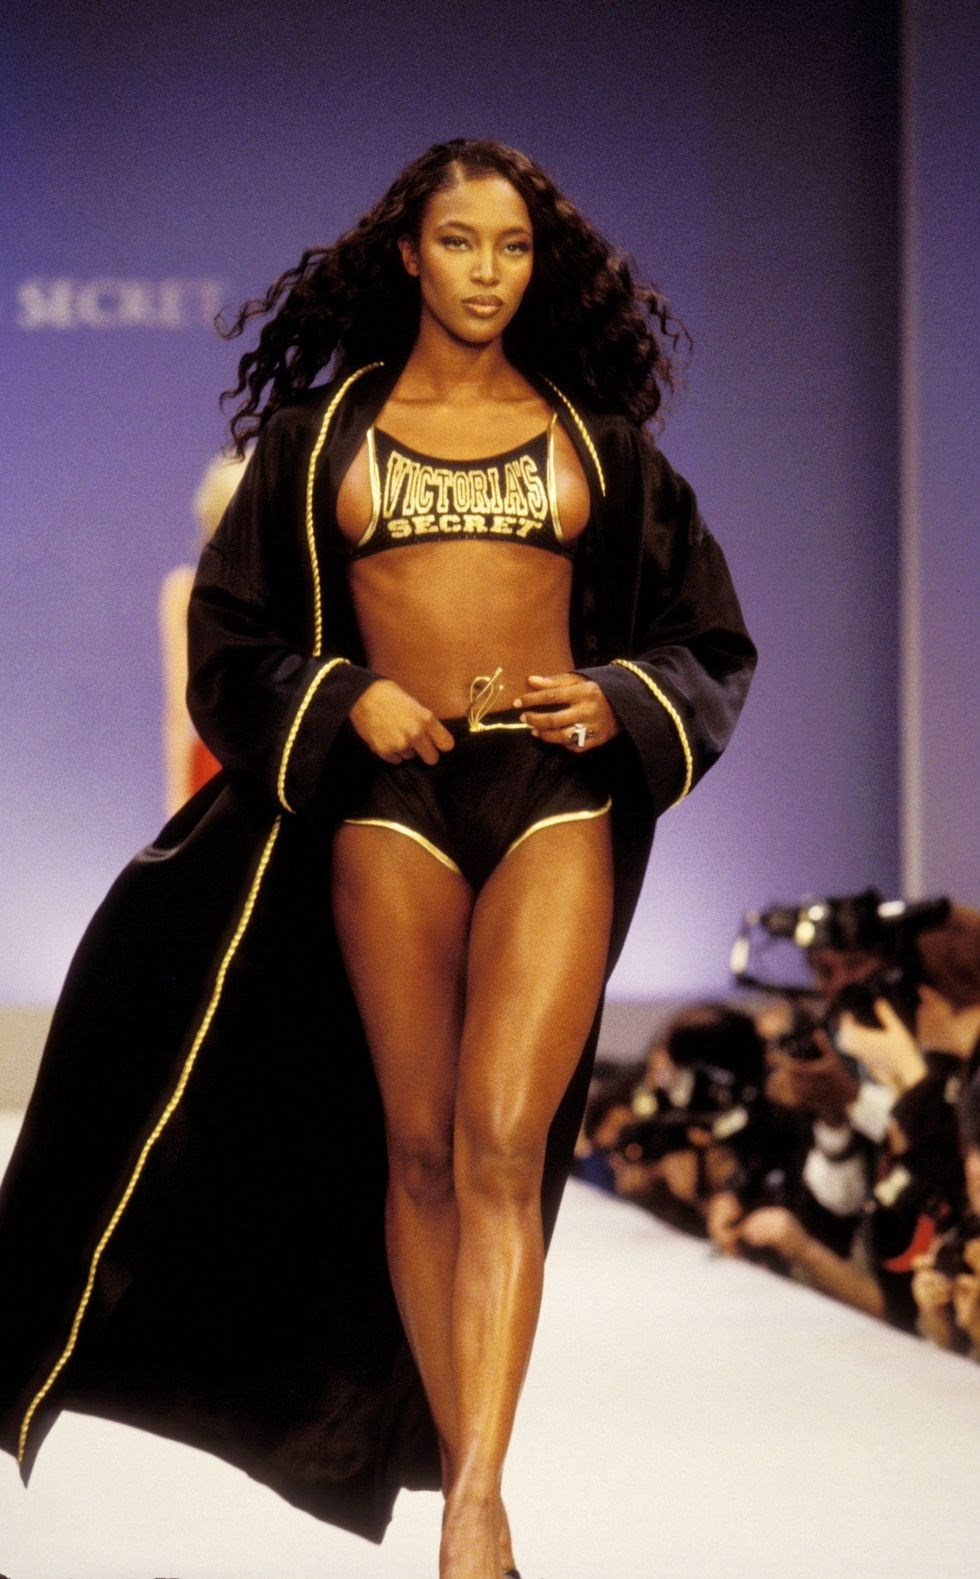 the best victoria u0026 39 s secret runway looks of all time